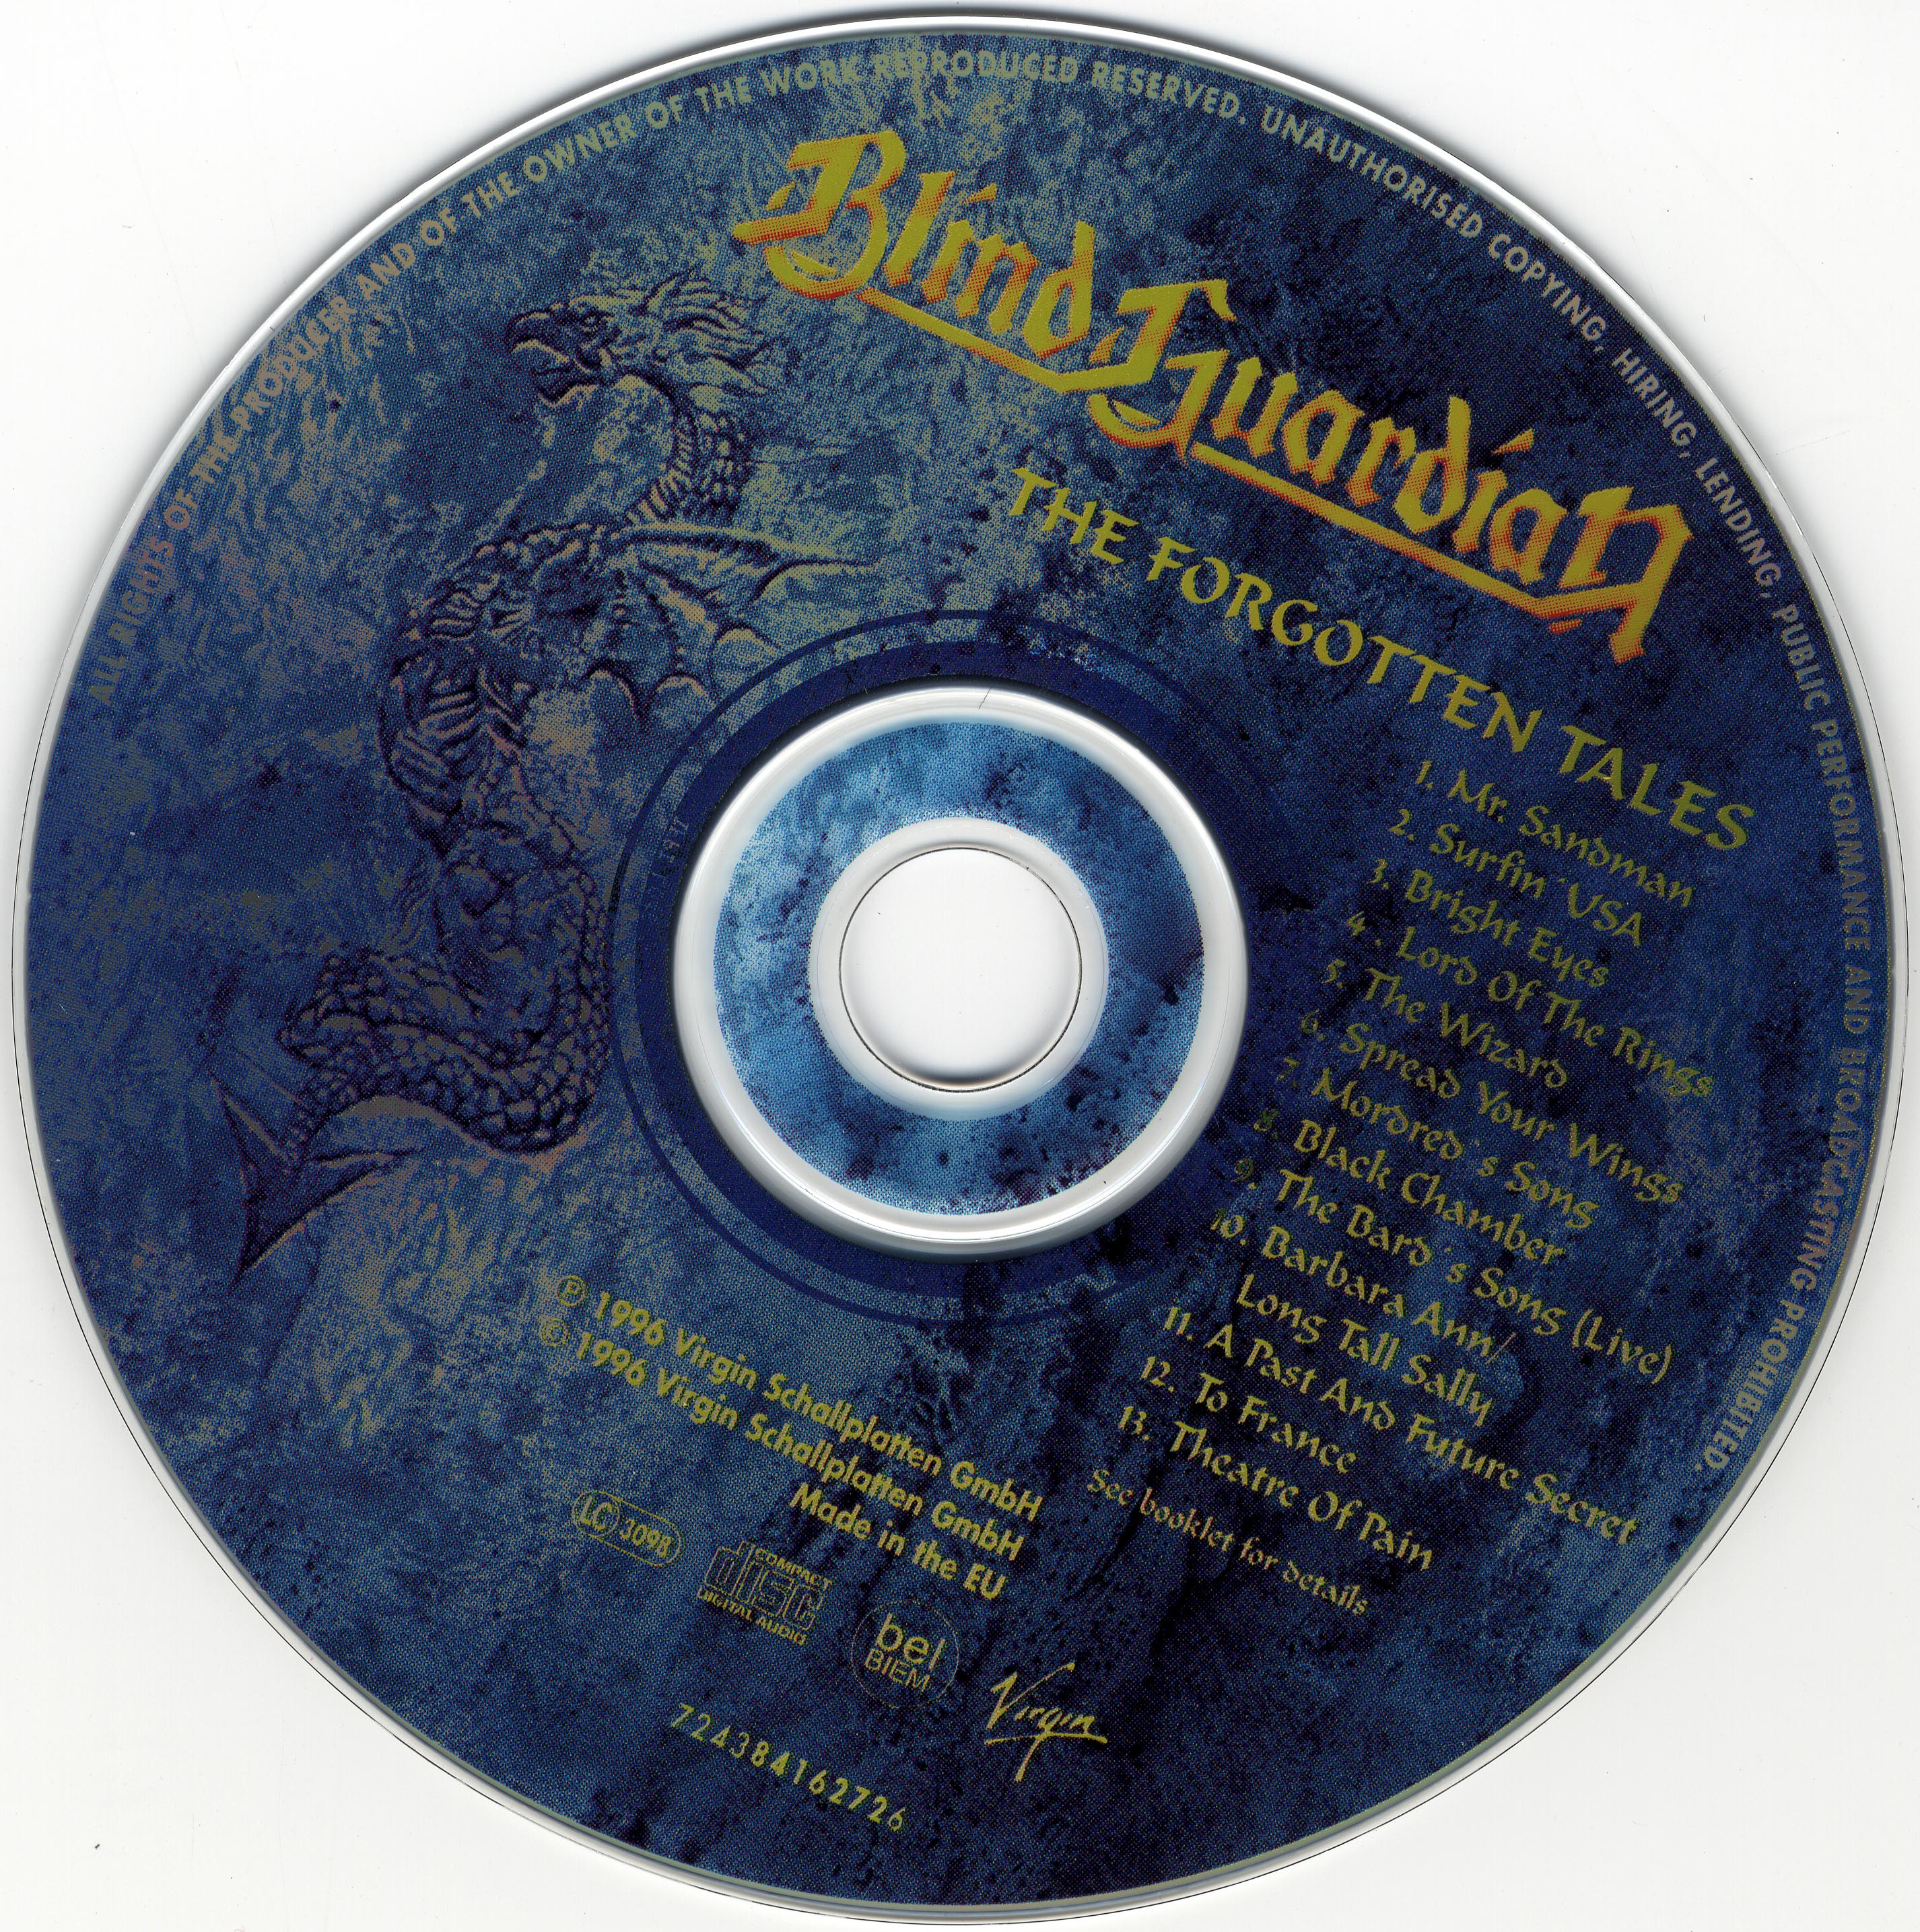 the forgotten tales 39 keeper blind guardian albums the forgotten tales. Black Bedroom Furniture Sets. Home Design Ideas